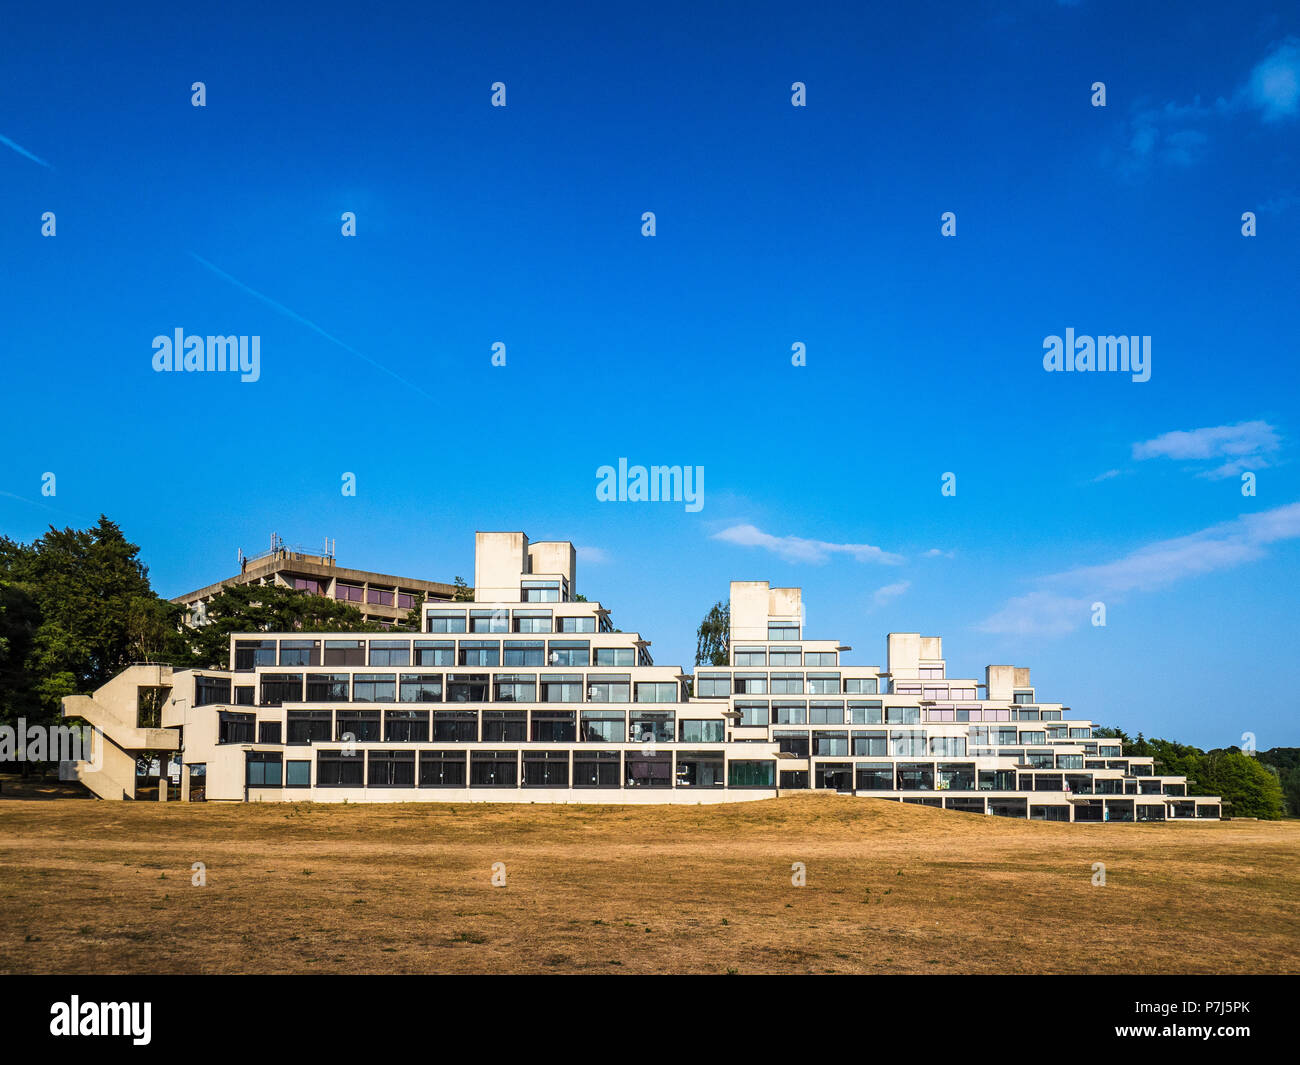 Ziggurats at the University of East Anglia UEA in Norwich UK - the ziggurats provide student accommodation. Architect Denys Lasdun opened 1966 - Stock Image